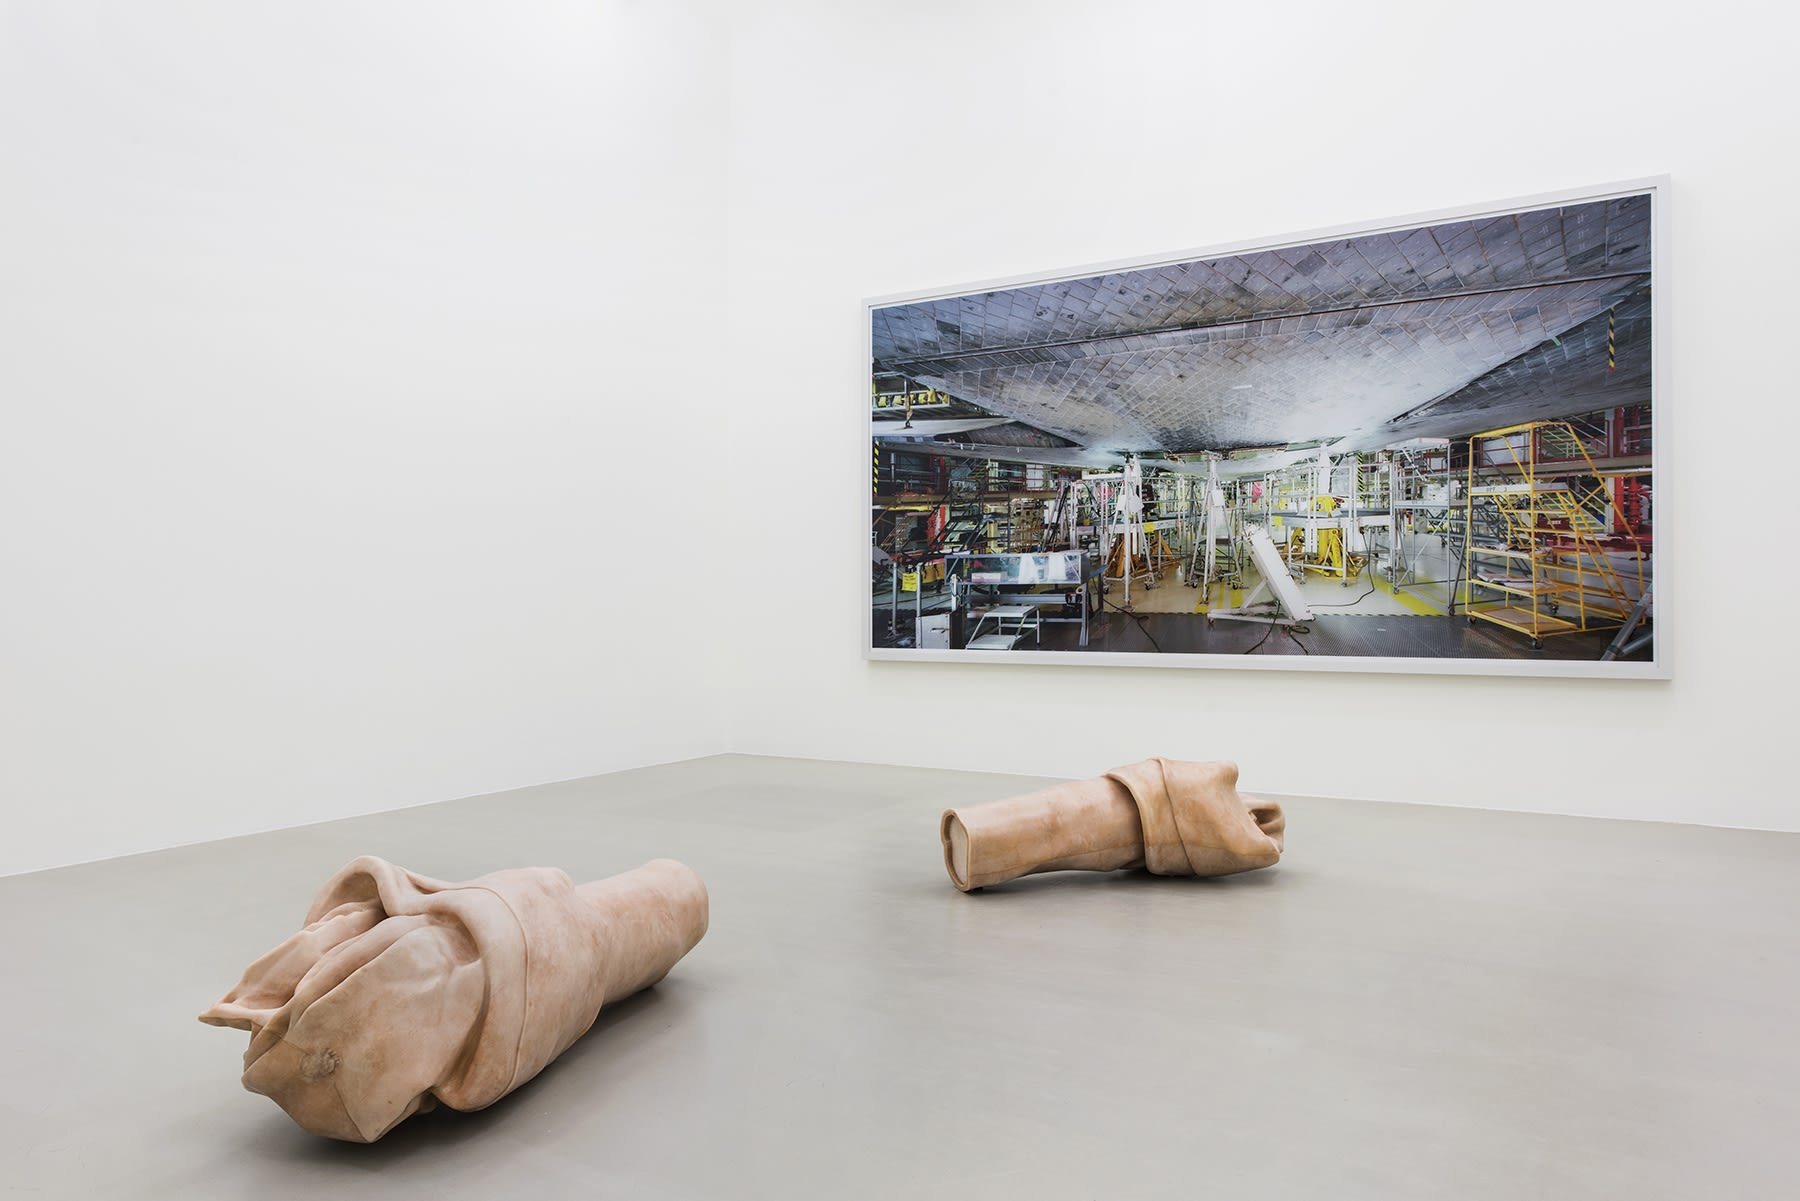 A large color photograph hangs on the wall behind a sculpture of a large rawhide bone cut in half.